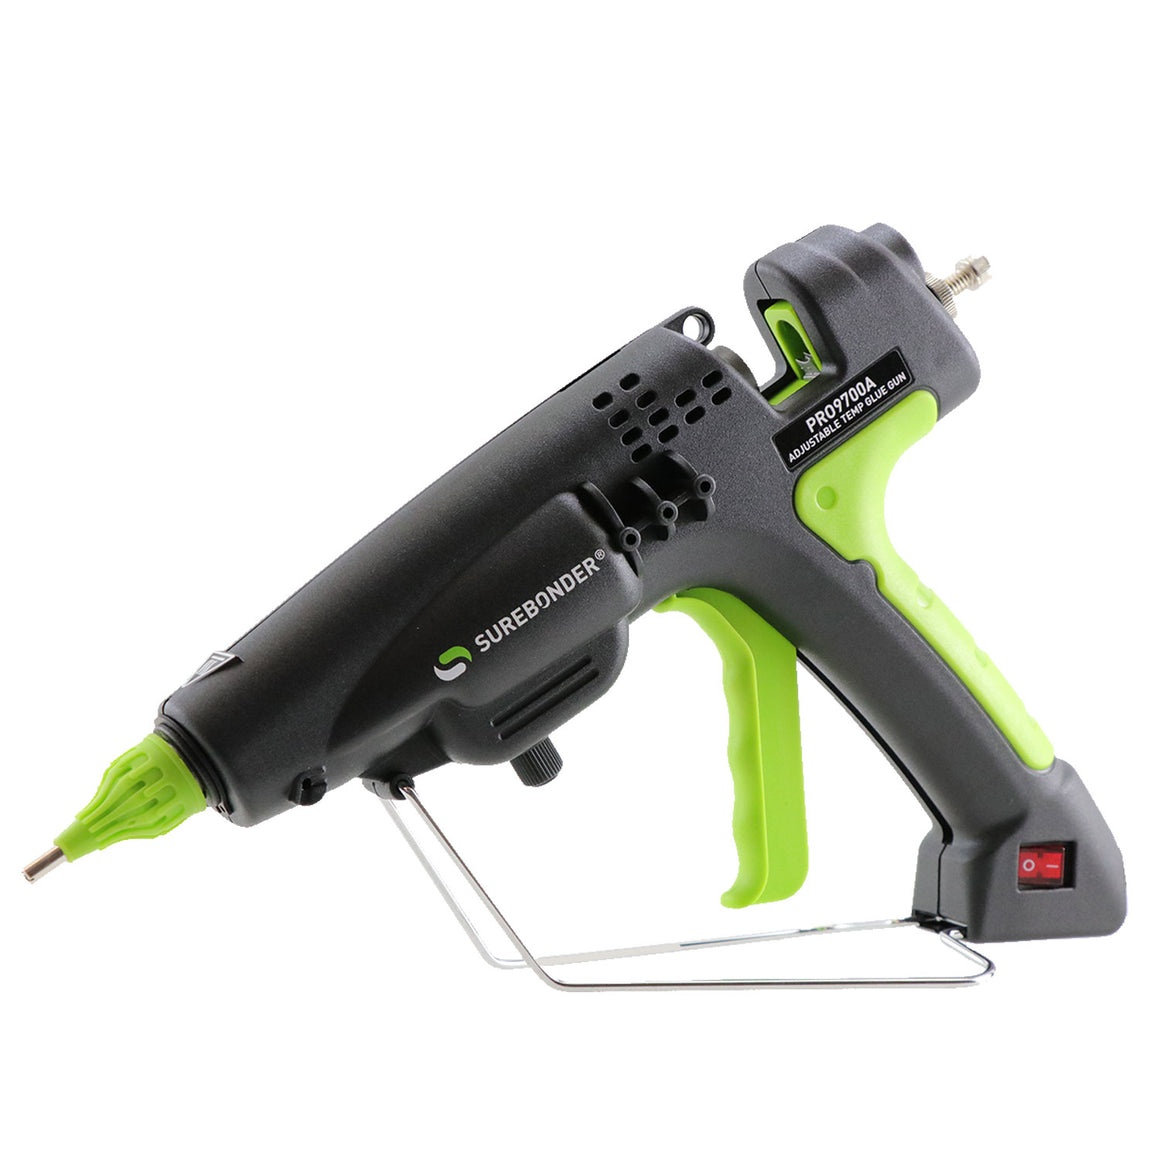 Surebonder 300 watt full size hot glue gun, heavy duty, 3 nozzle tips included in kit with metal stand and cord